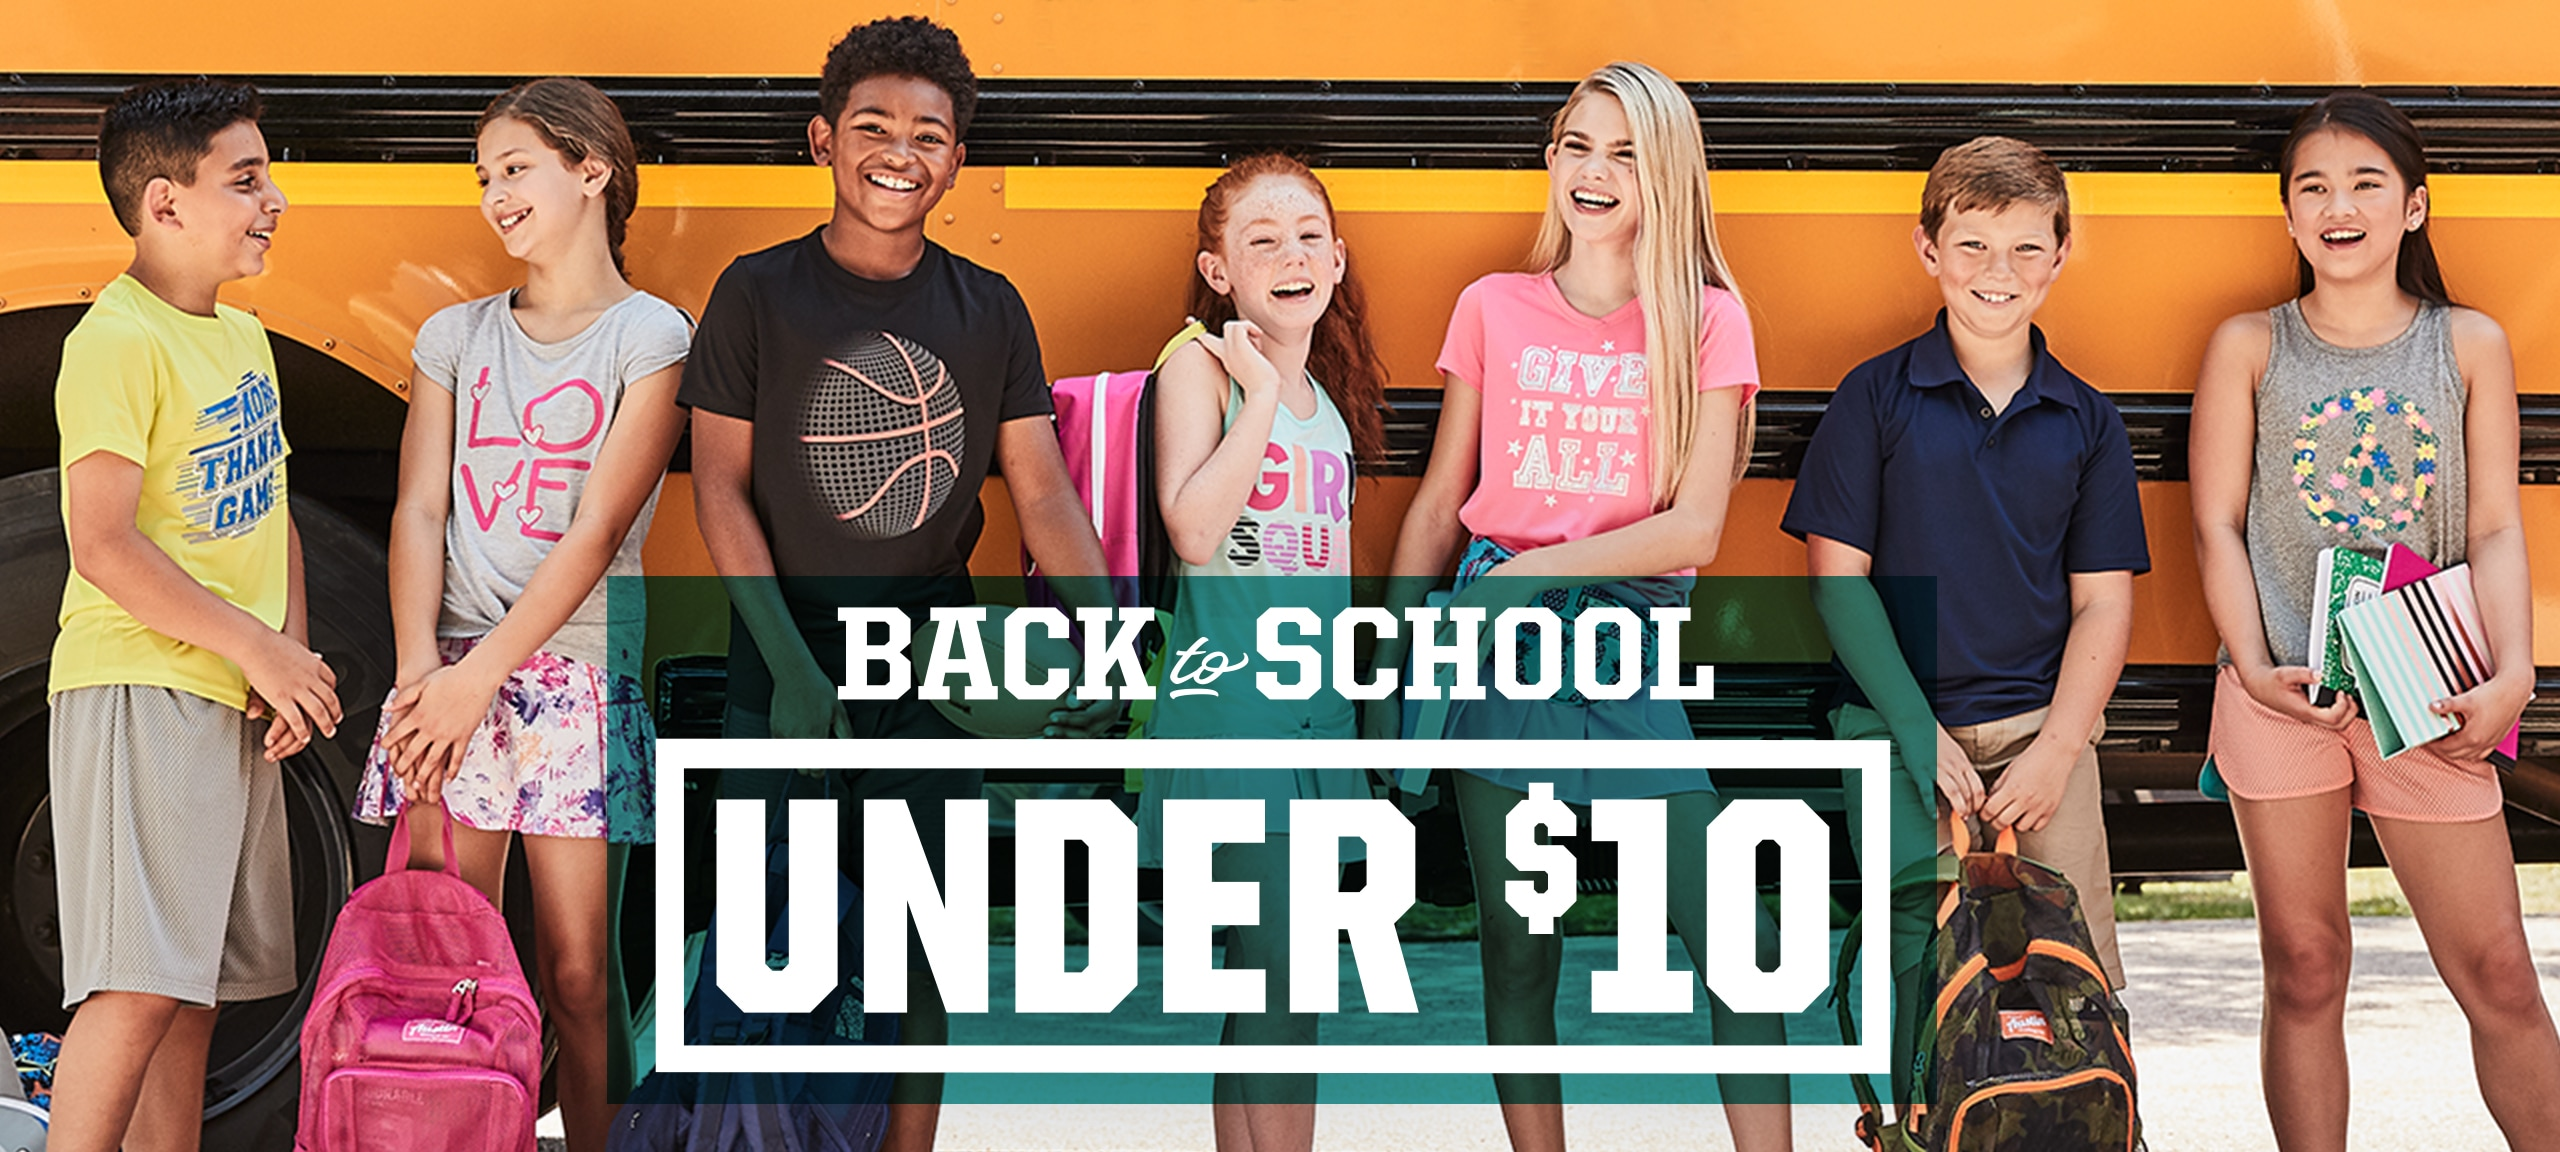 Back To School 2018, Under $10